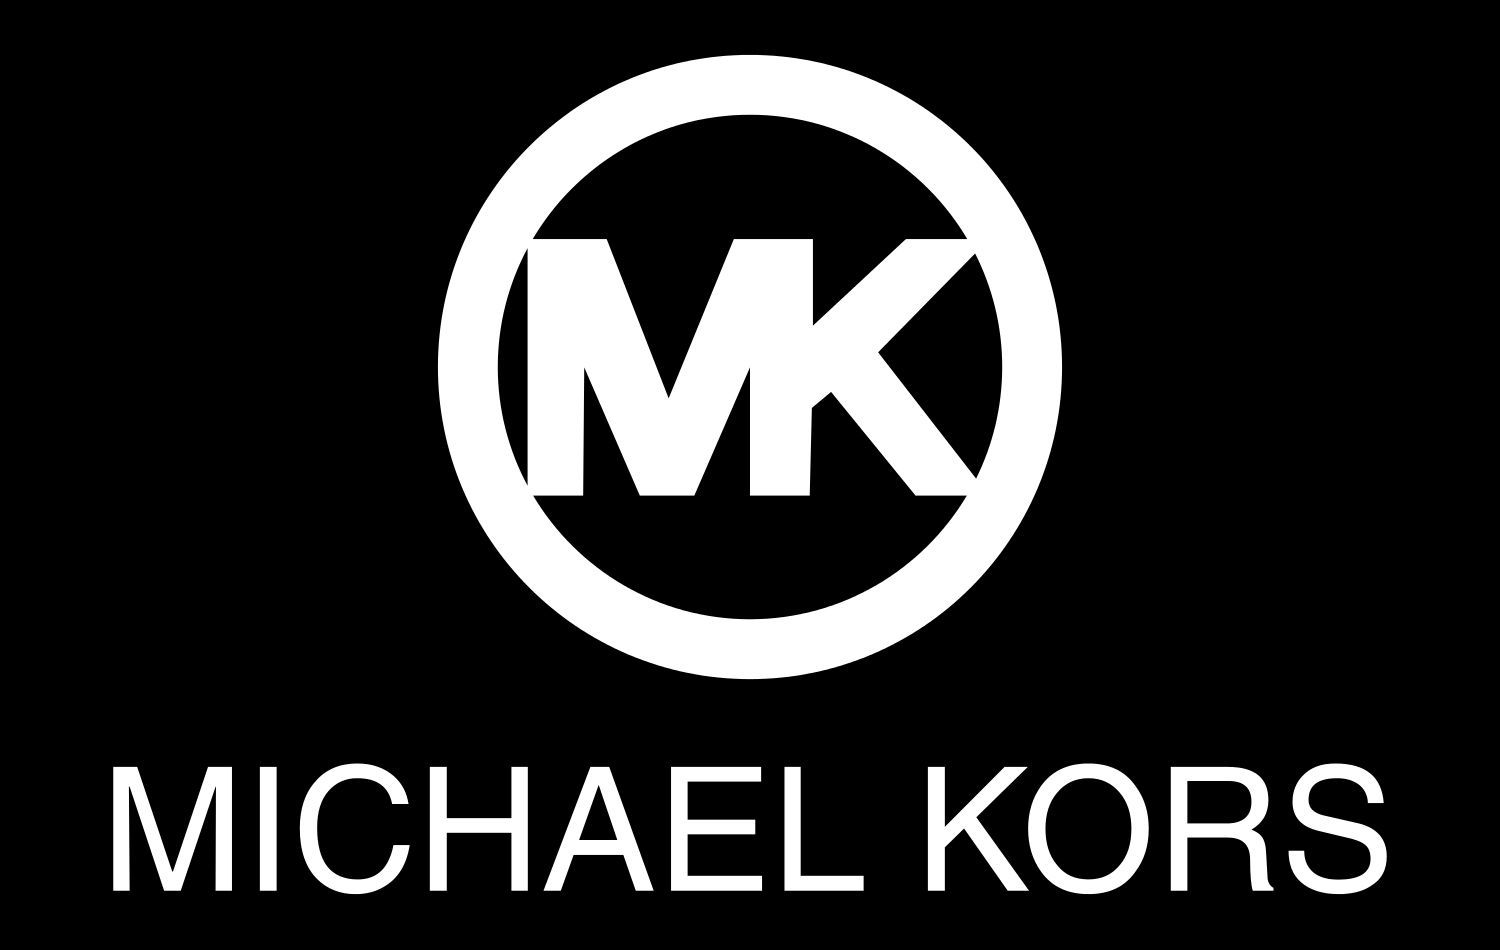 Michael kors symbol all logos world pinterest michael kors one of the worlds most known luxury fashion companies the michael kors holdings limited has a wordmark logo and an emblem both may appear together biocorpaavc Choice Image